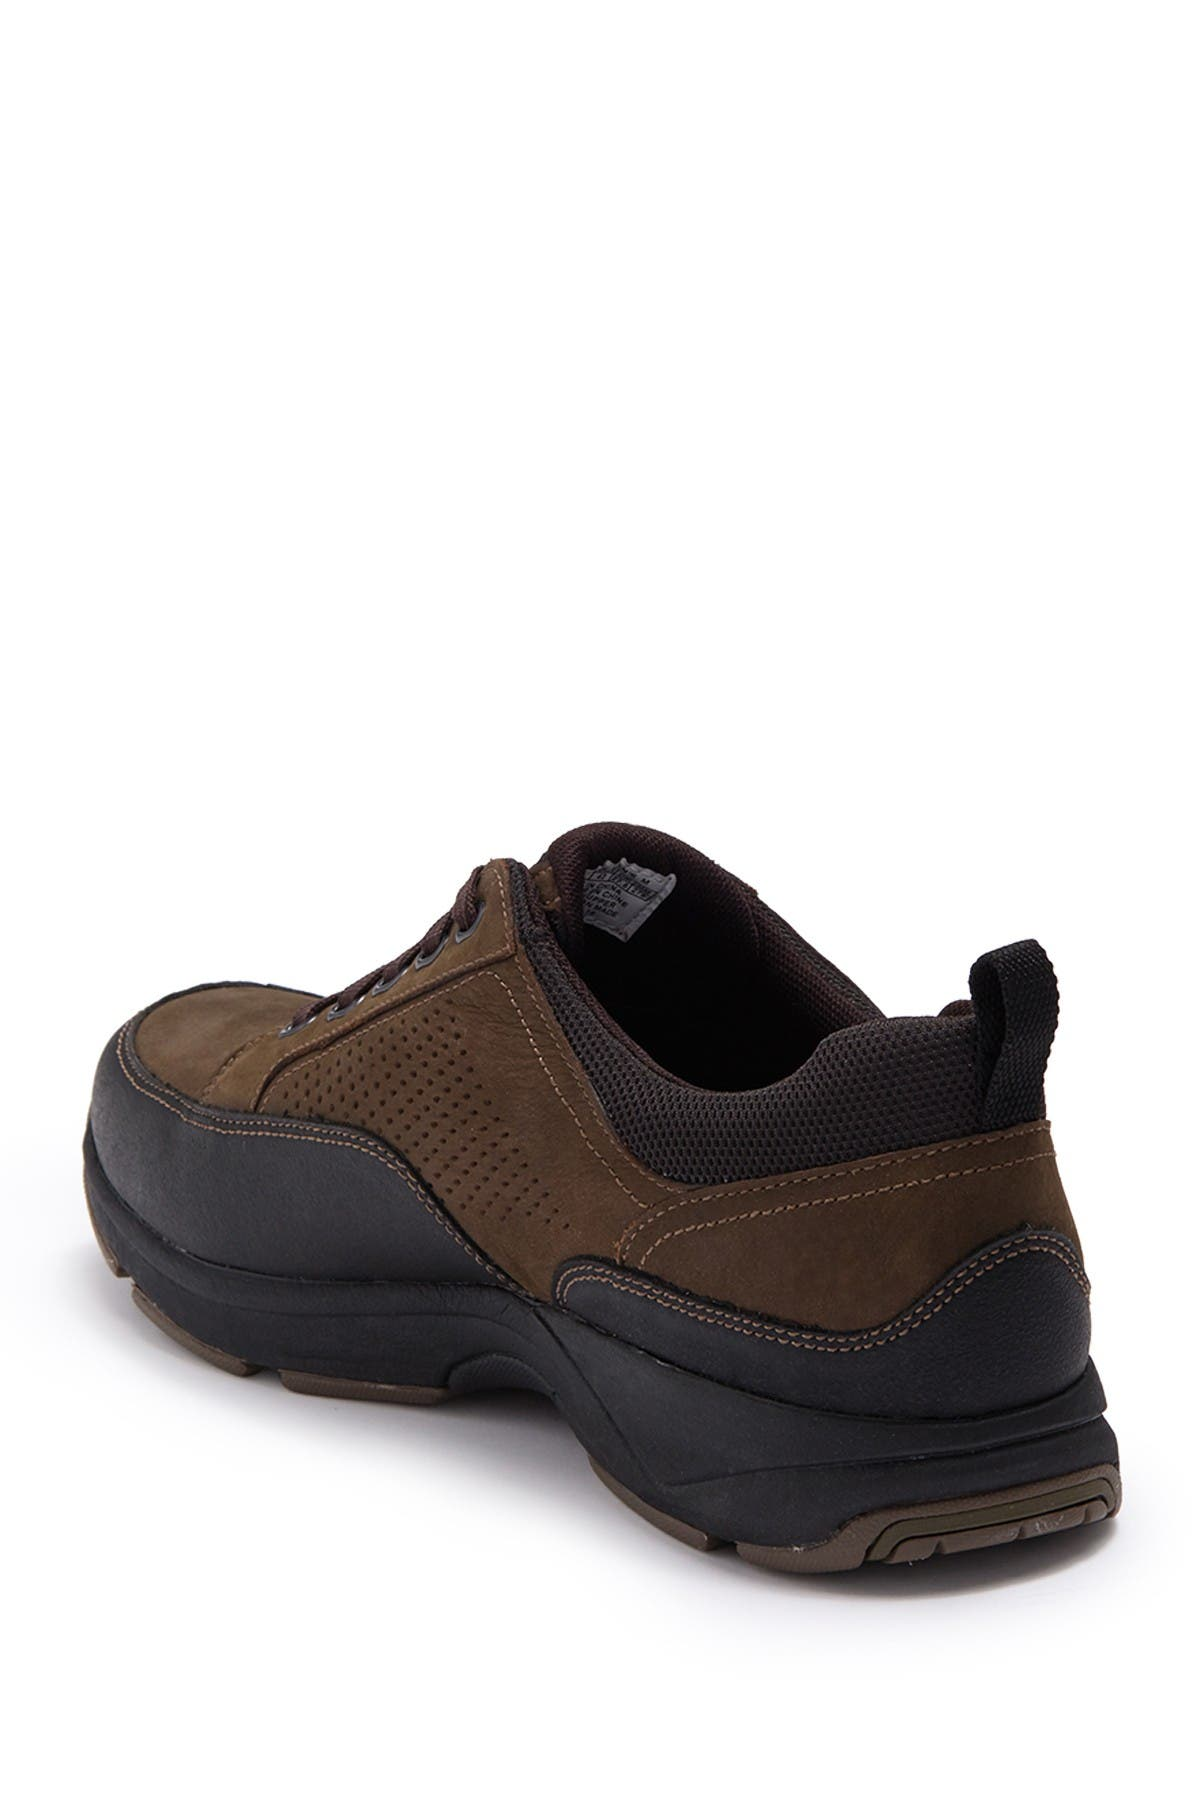 Image of Rockport Weller Lace to Toe Sneaker - Wide Width Available